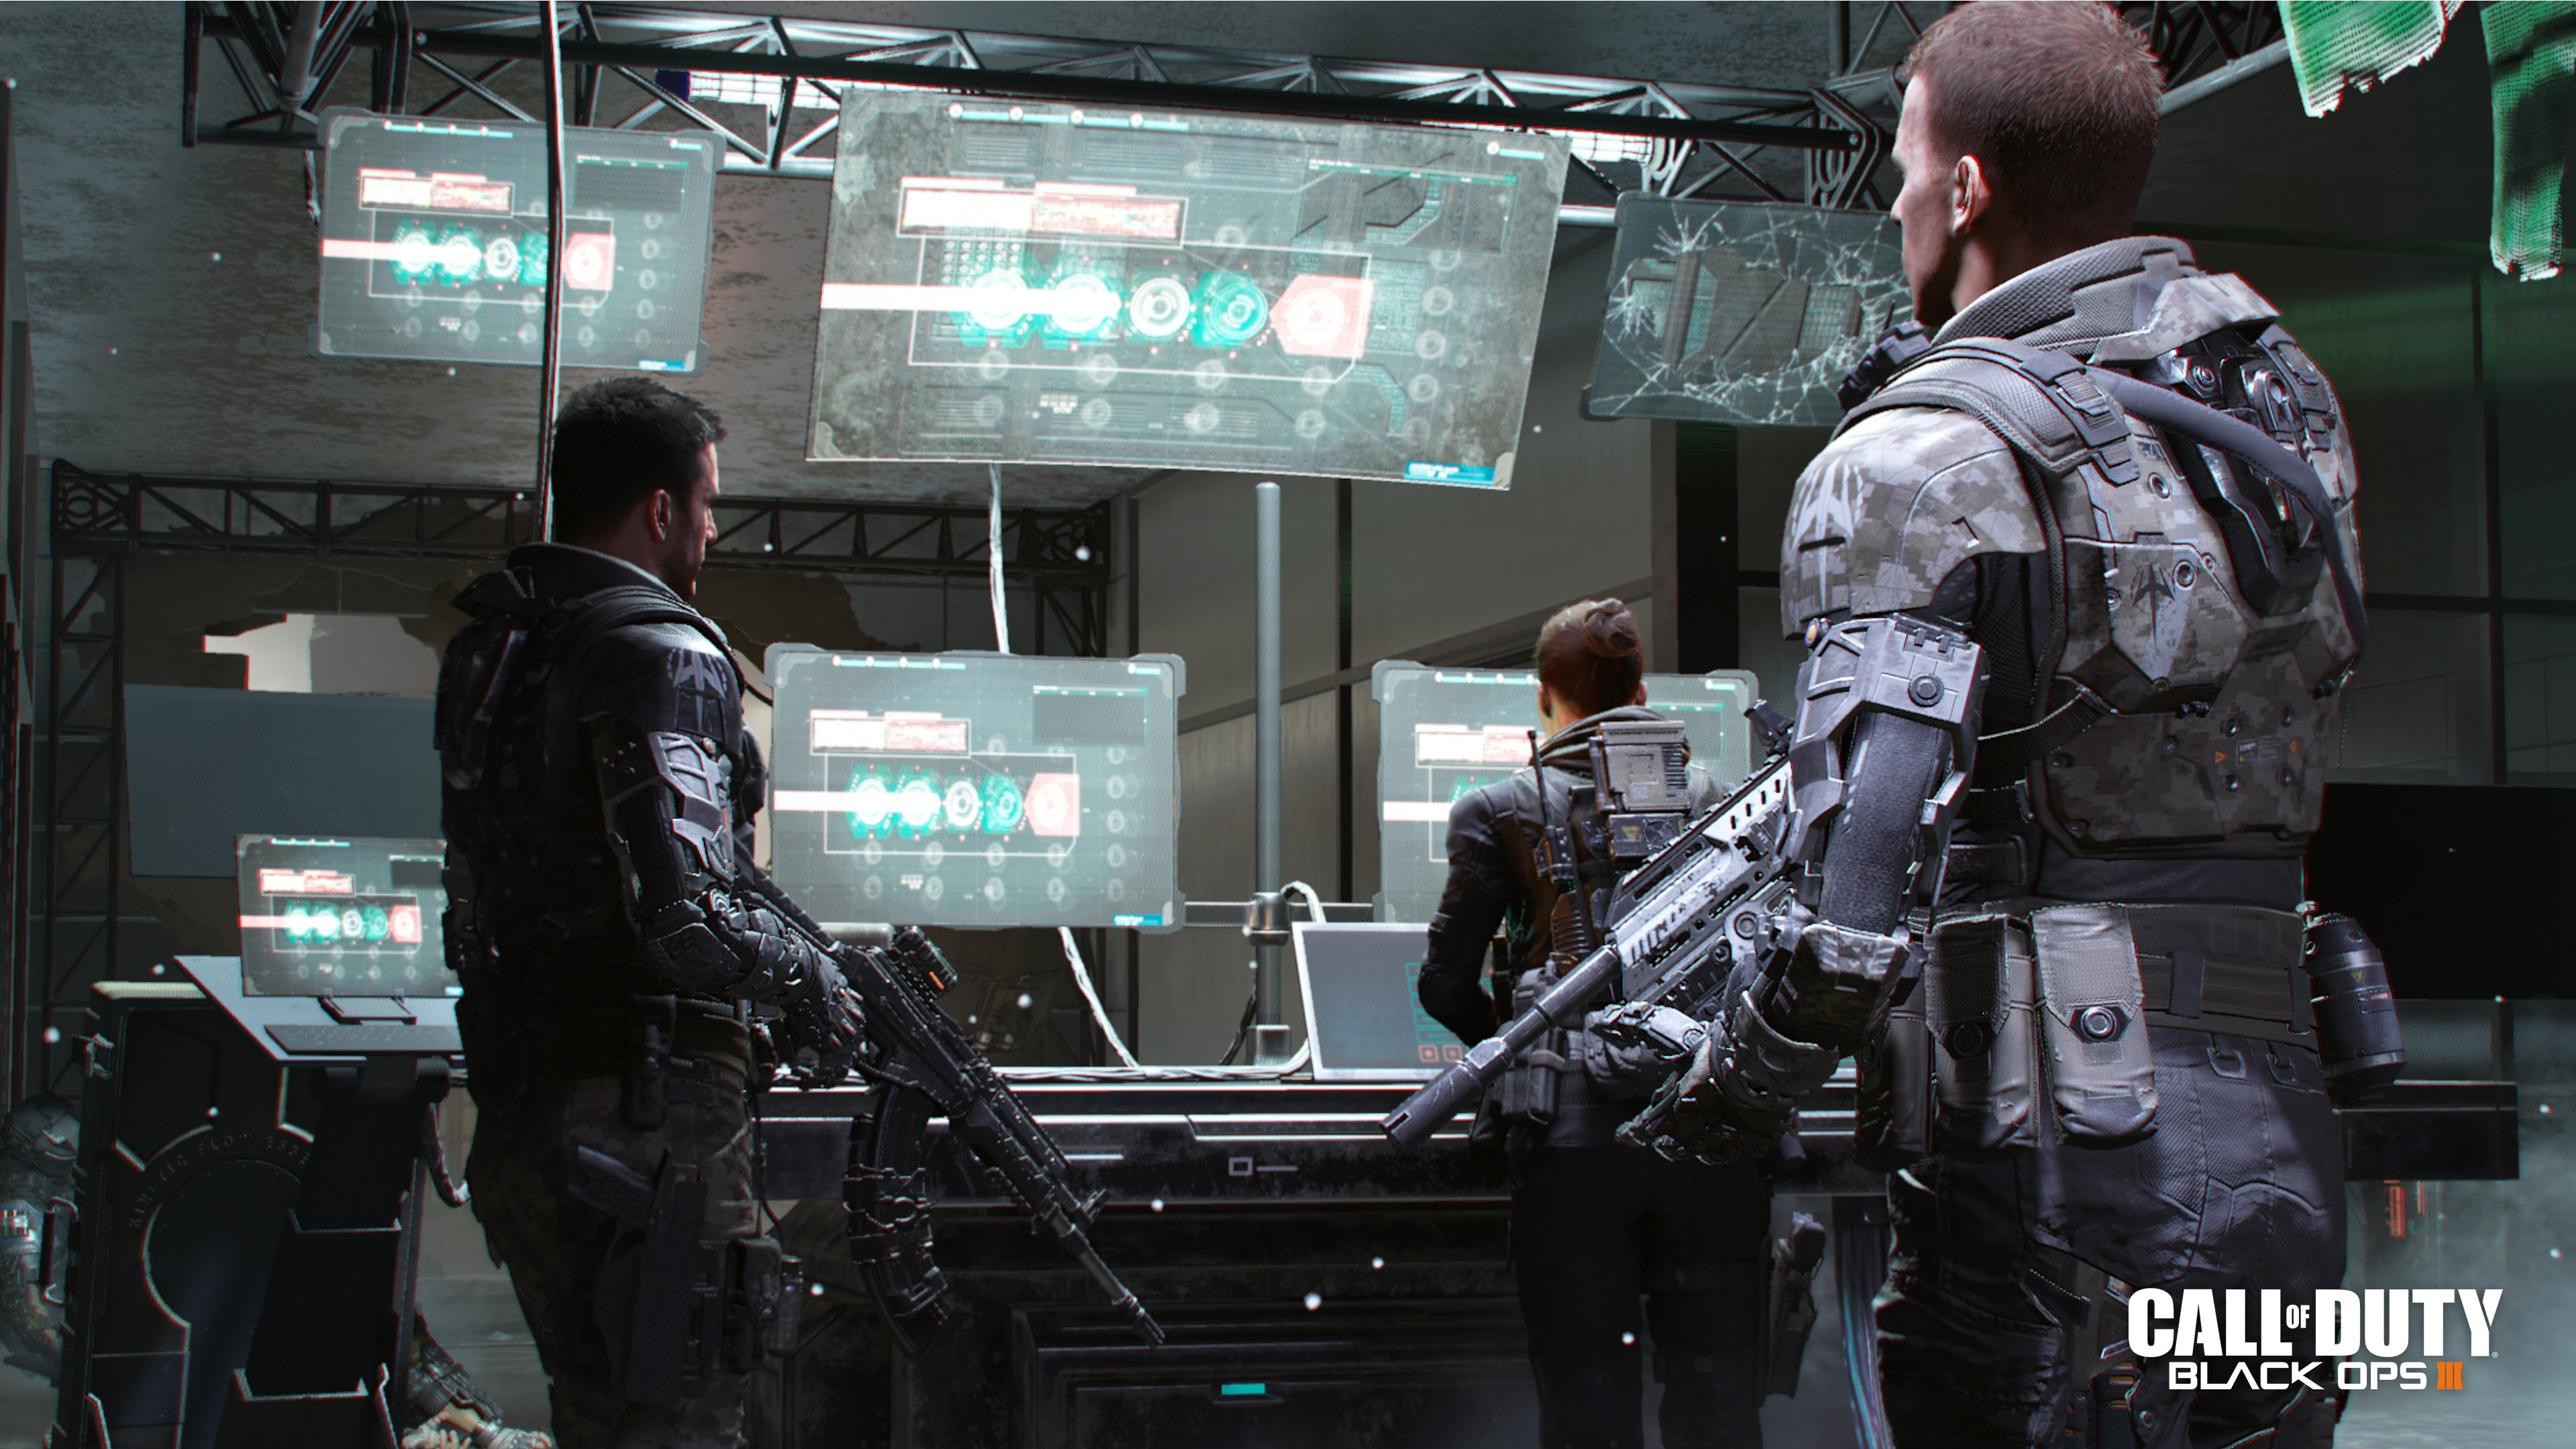 Black Ops 3 S Campaign Safehouse Features A Training Sim For